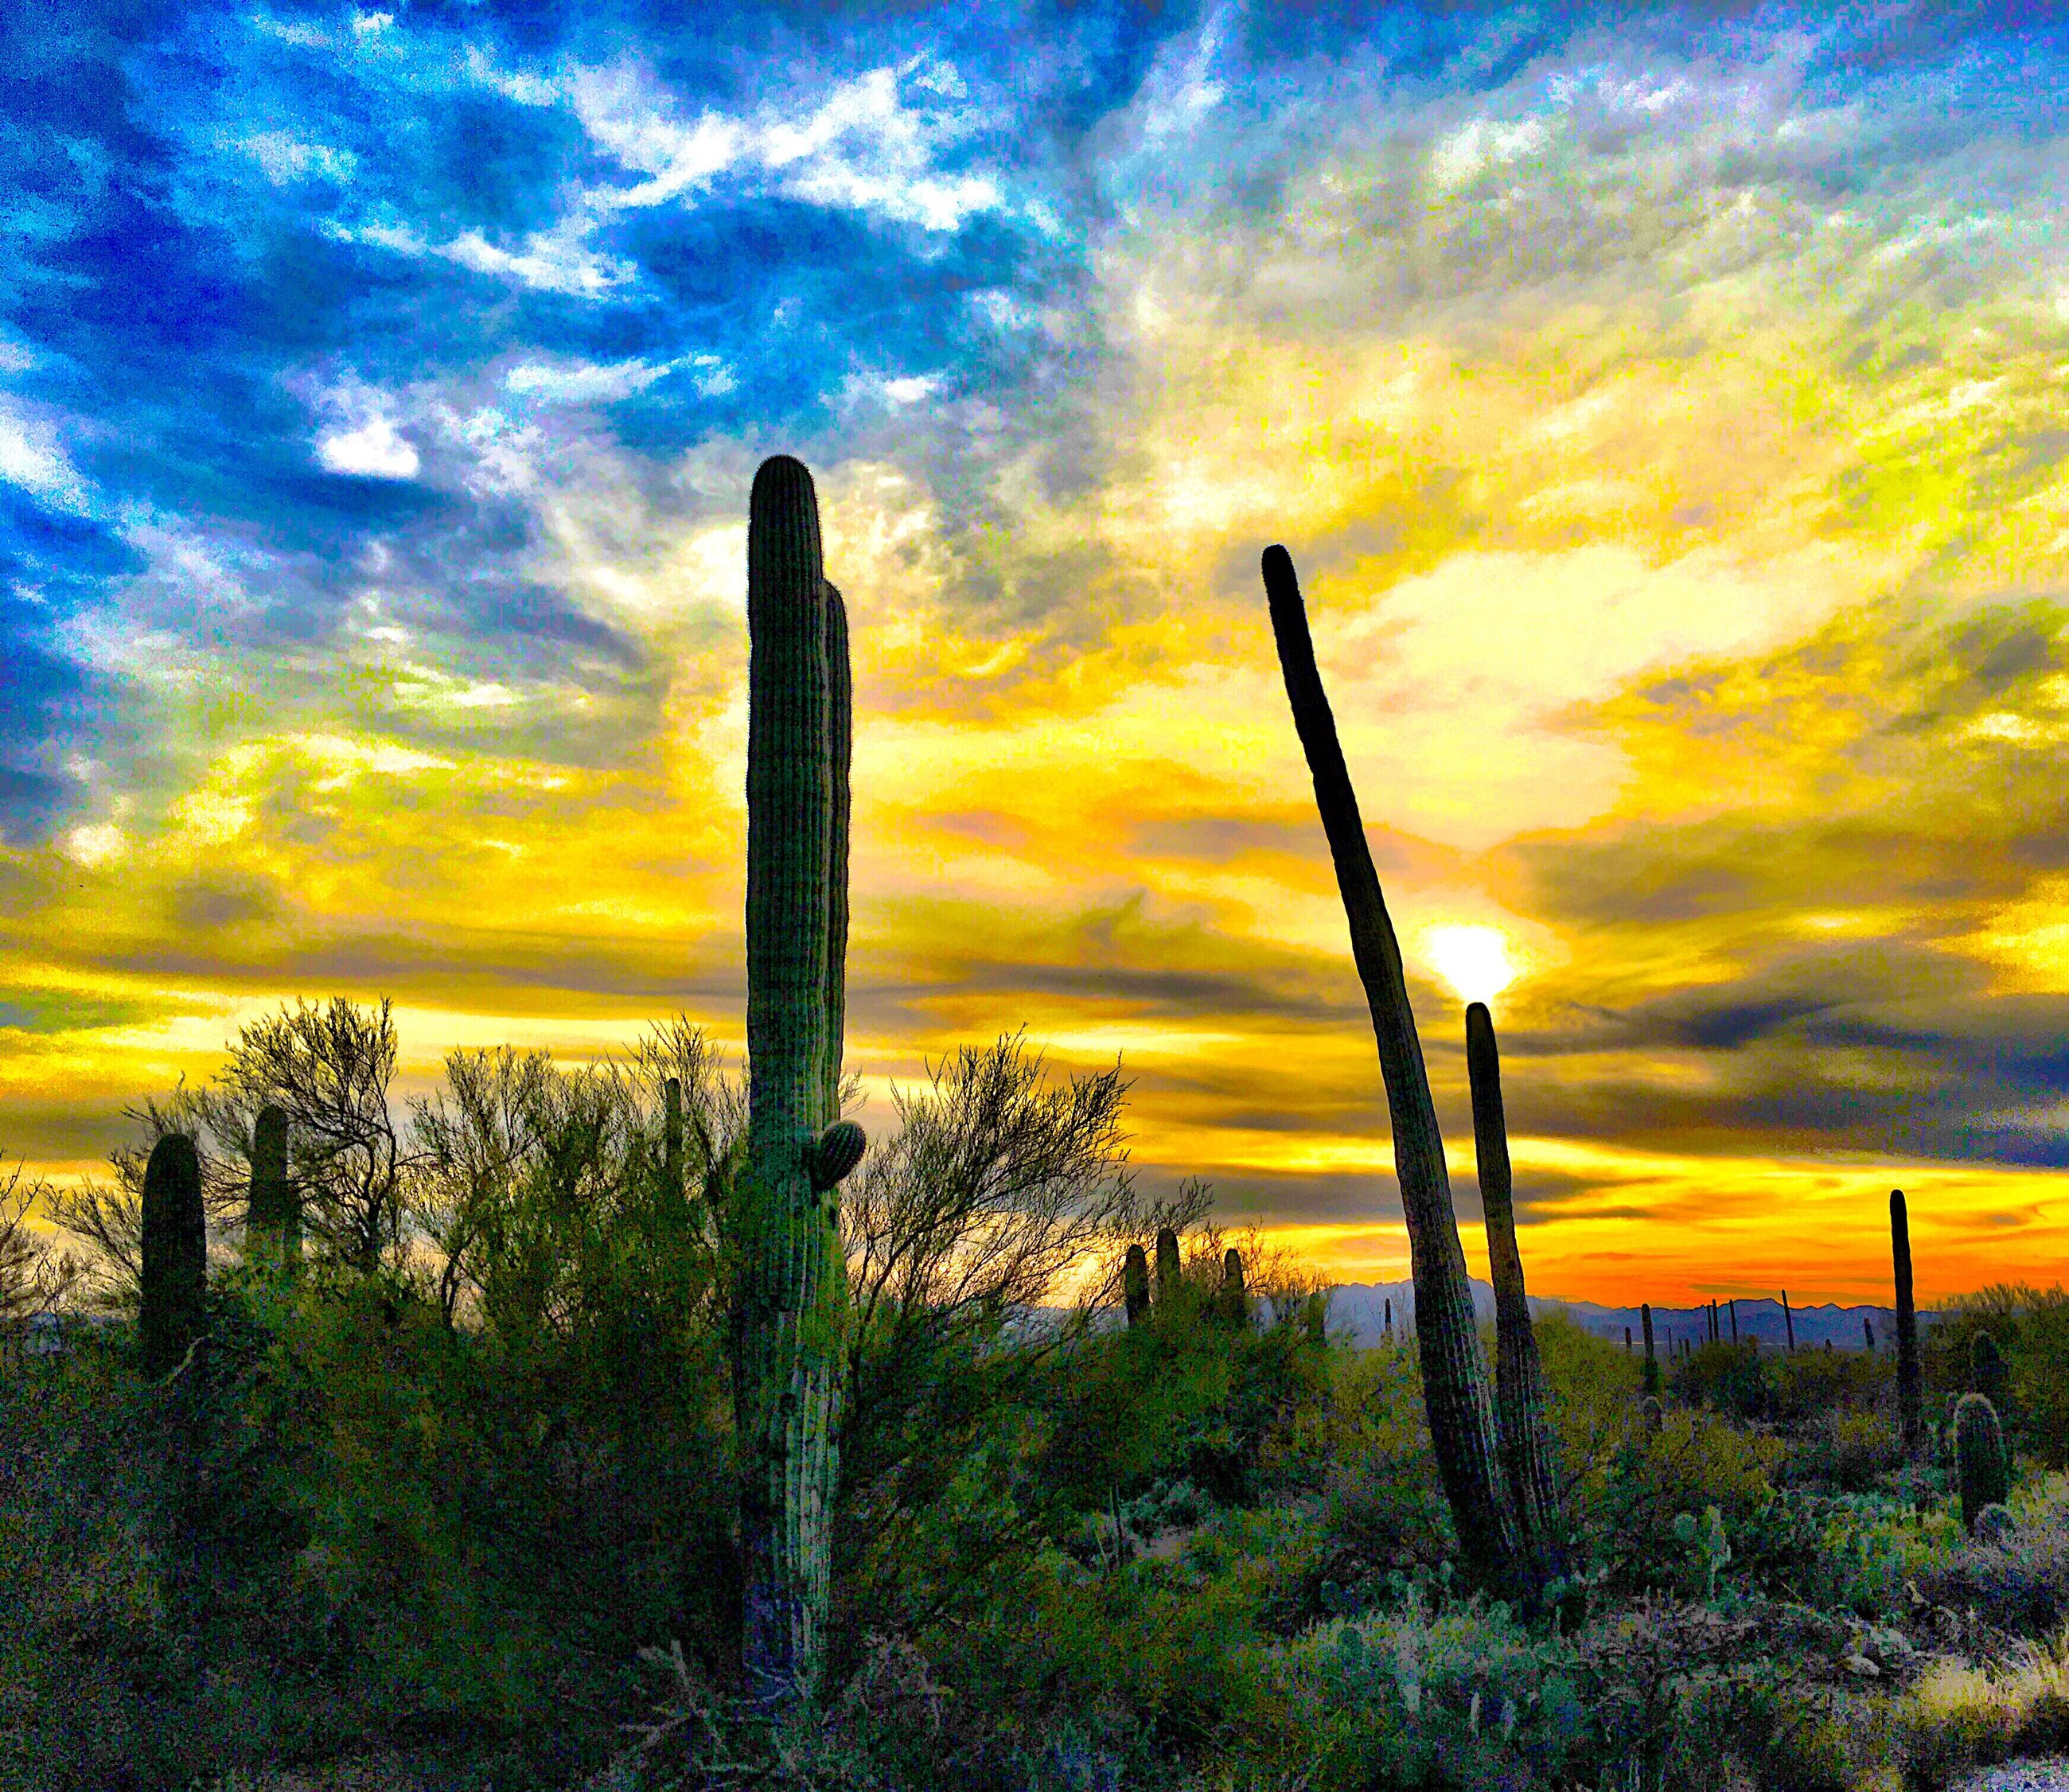 cactus, saguaro cactus, growth, nature, beauty in nature, dramatic sky, sunset, cloud - sky, tranquility, scenics, plant, sky, tranquil scene, uncultivated, outdoors, no people, landscape, desert, low angle view, wilderness area, day